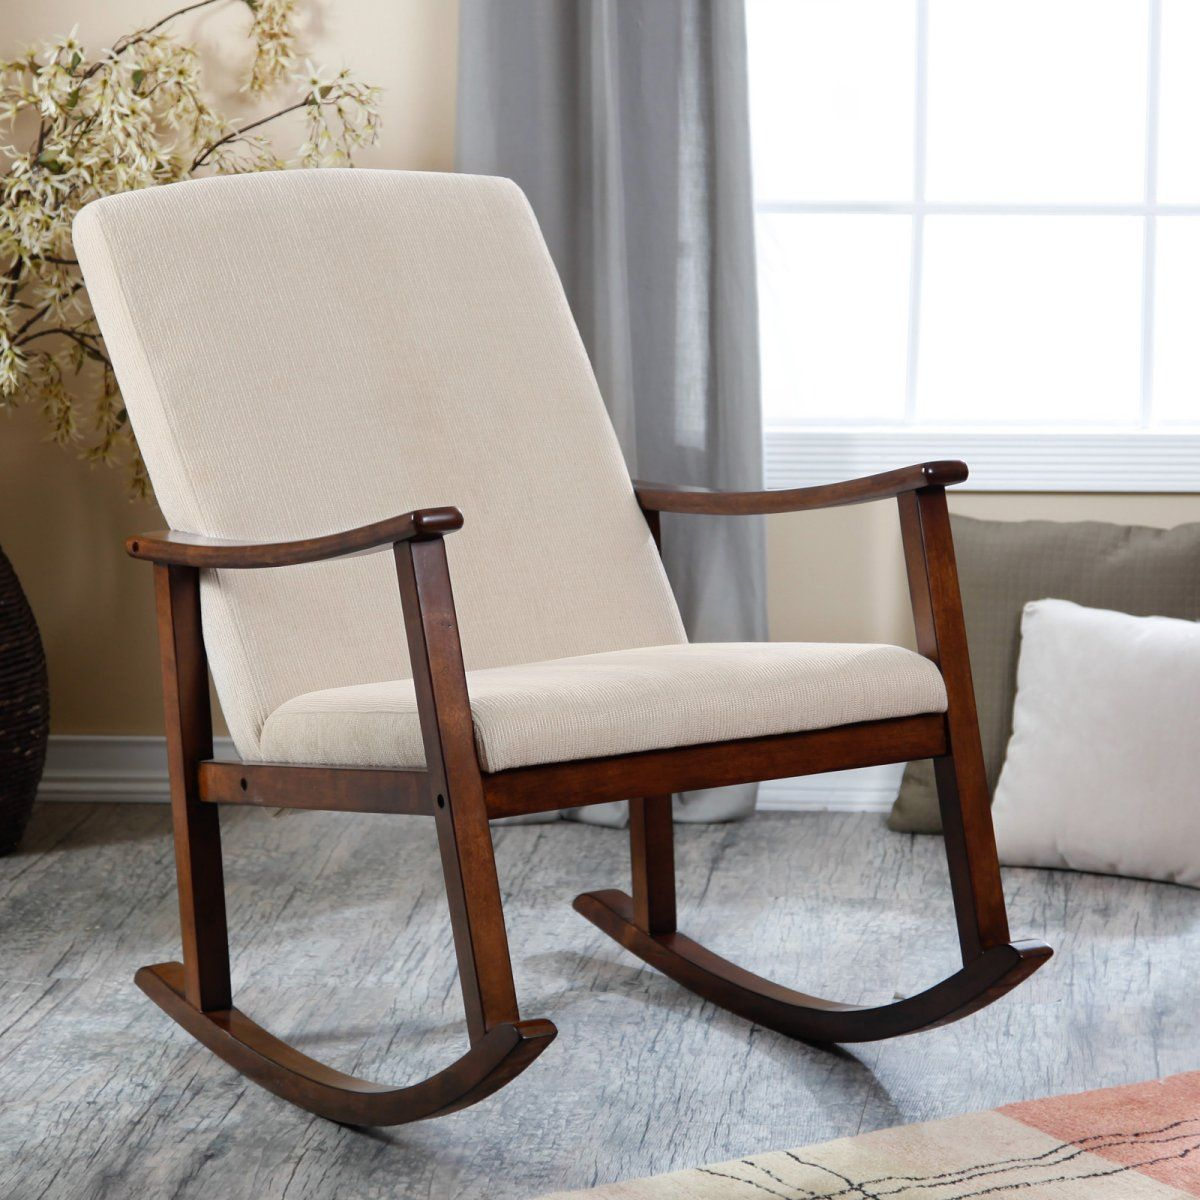 Merveilleux Holden Modern Rocking Chair   Rocking Chairs At Hayneedle